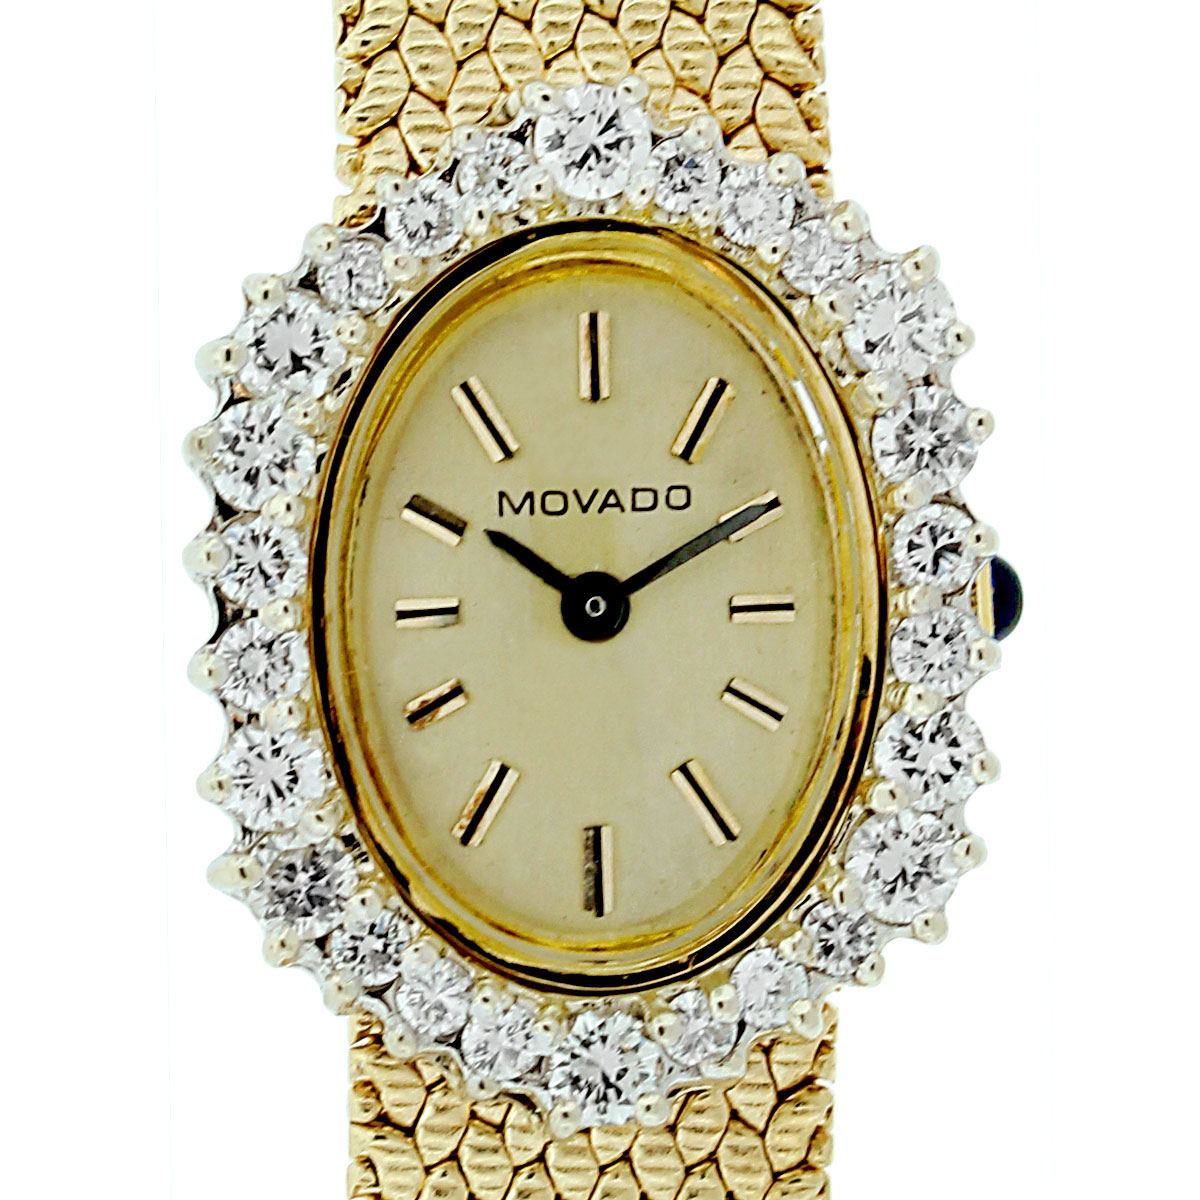 Diamond Watch Movado Yellow Gold Diamond Bezel Vintage Ladies Watch